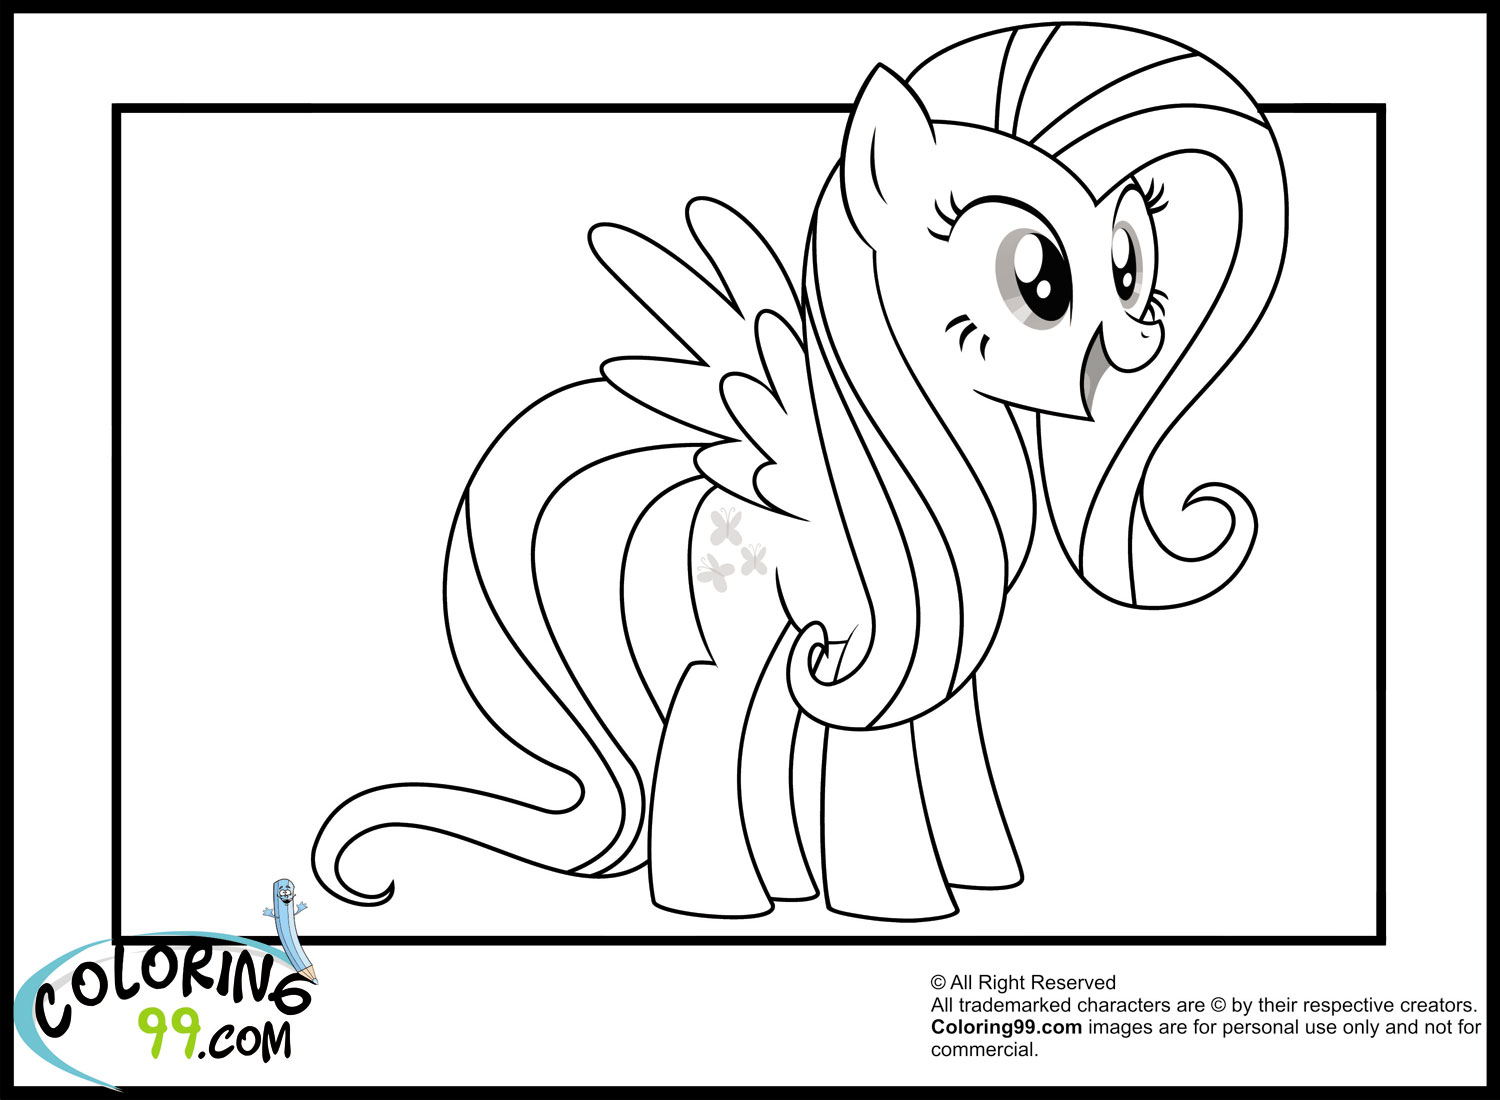 My Little Pony Fluttershy Coloring Pages | Minister Coloring